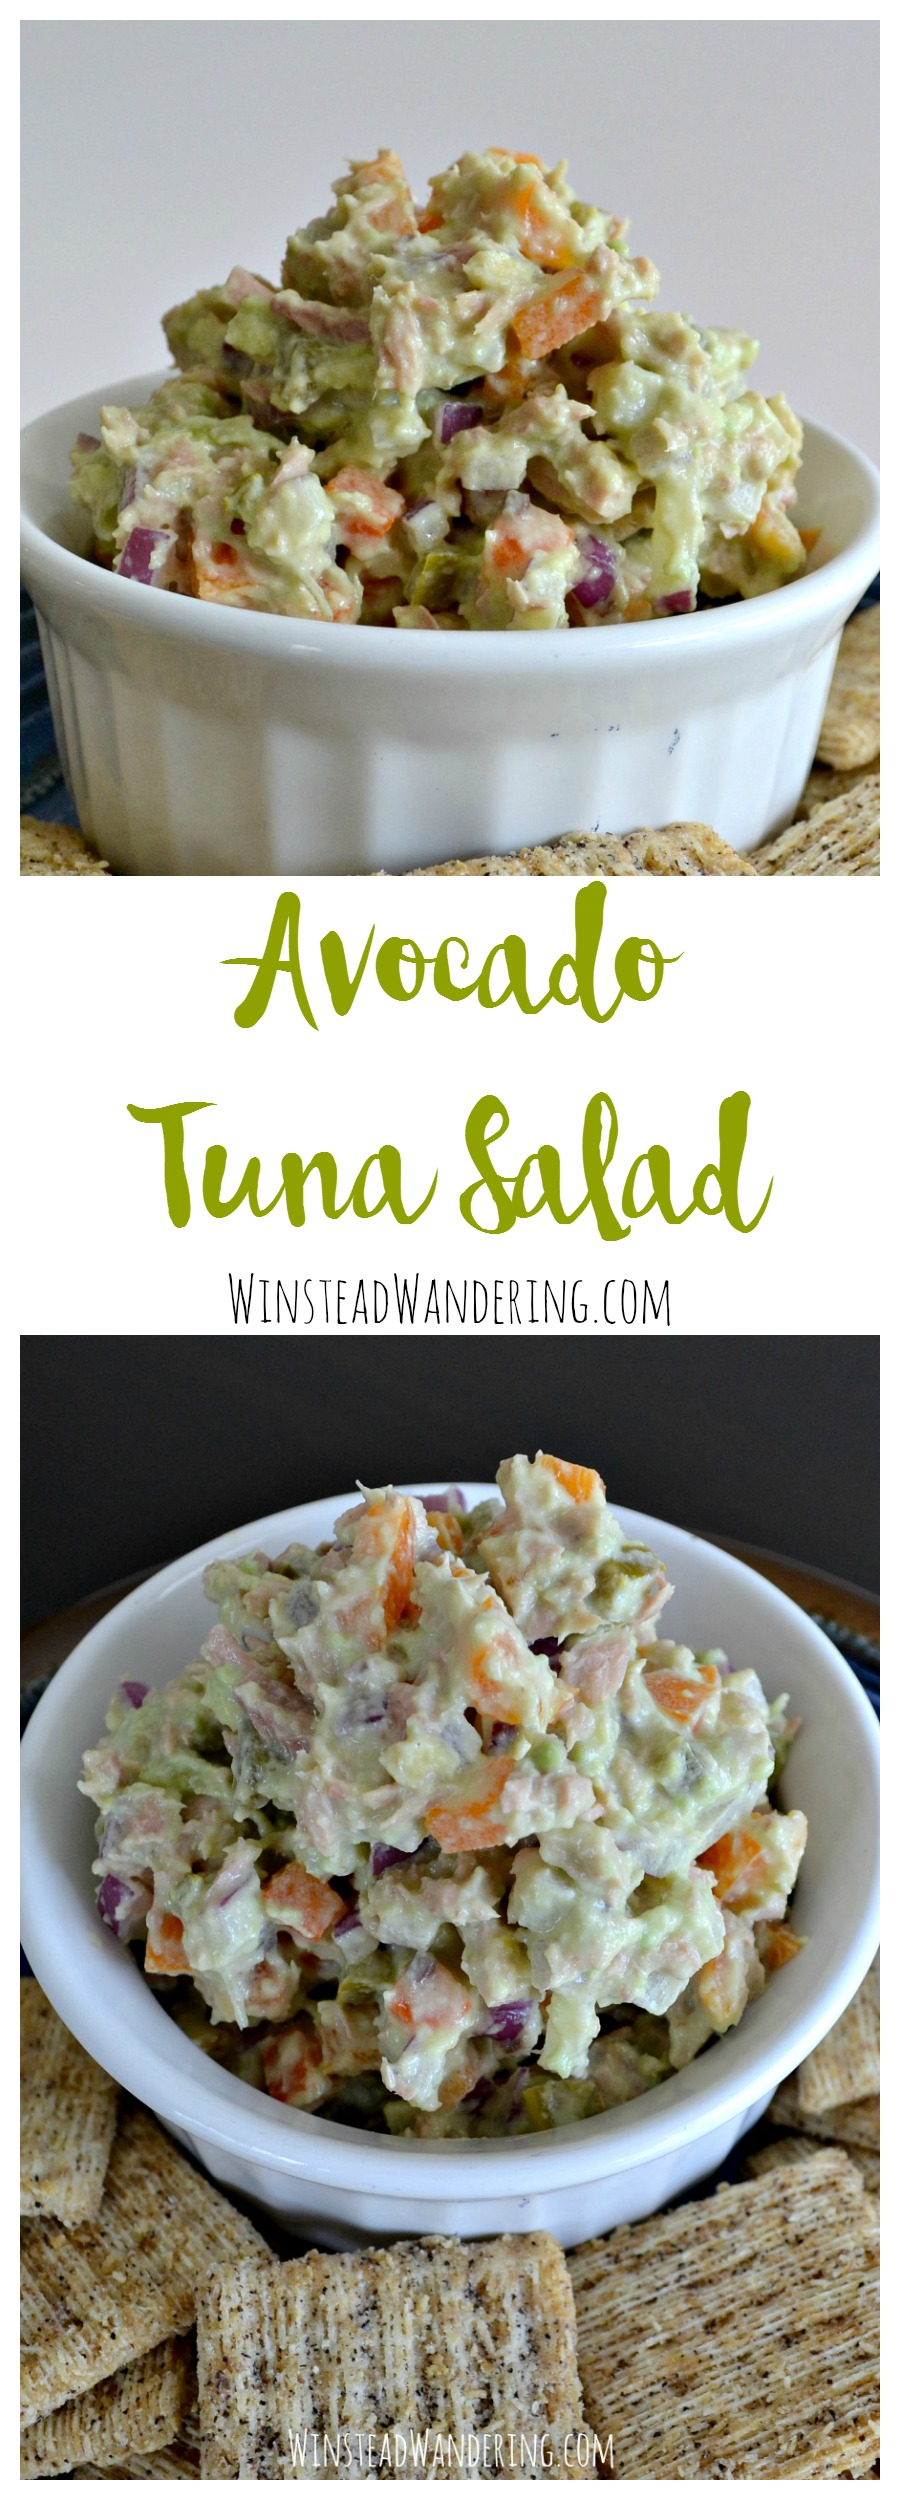 No mayo here. Hearty, healthy ingredients like Greek yogurt and sweet bell peppers will make this avocado tuna salad your new favorite lunch.